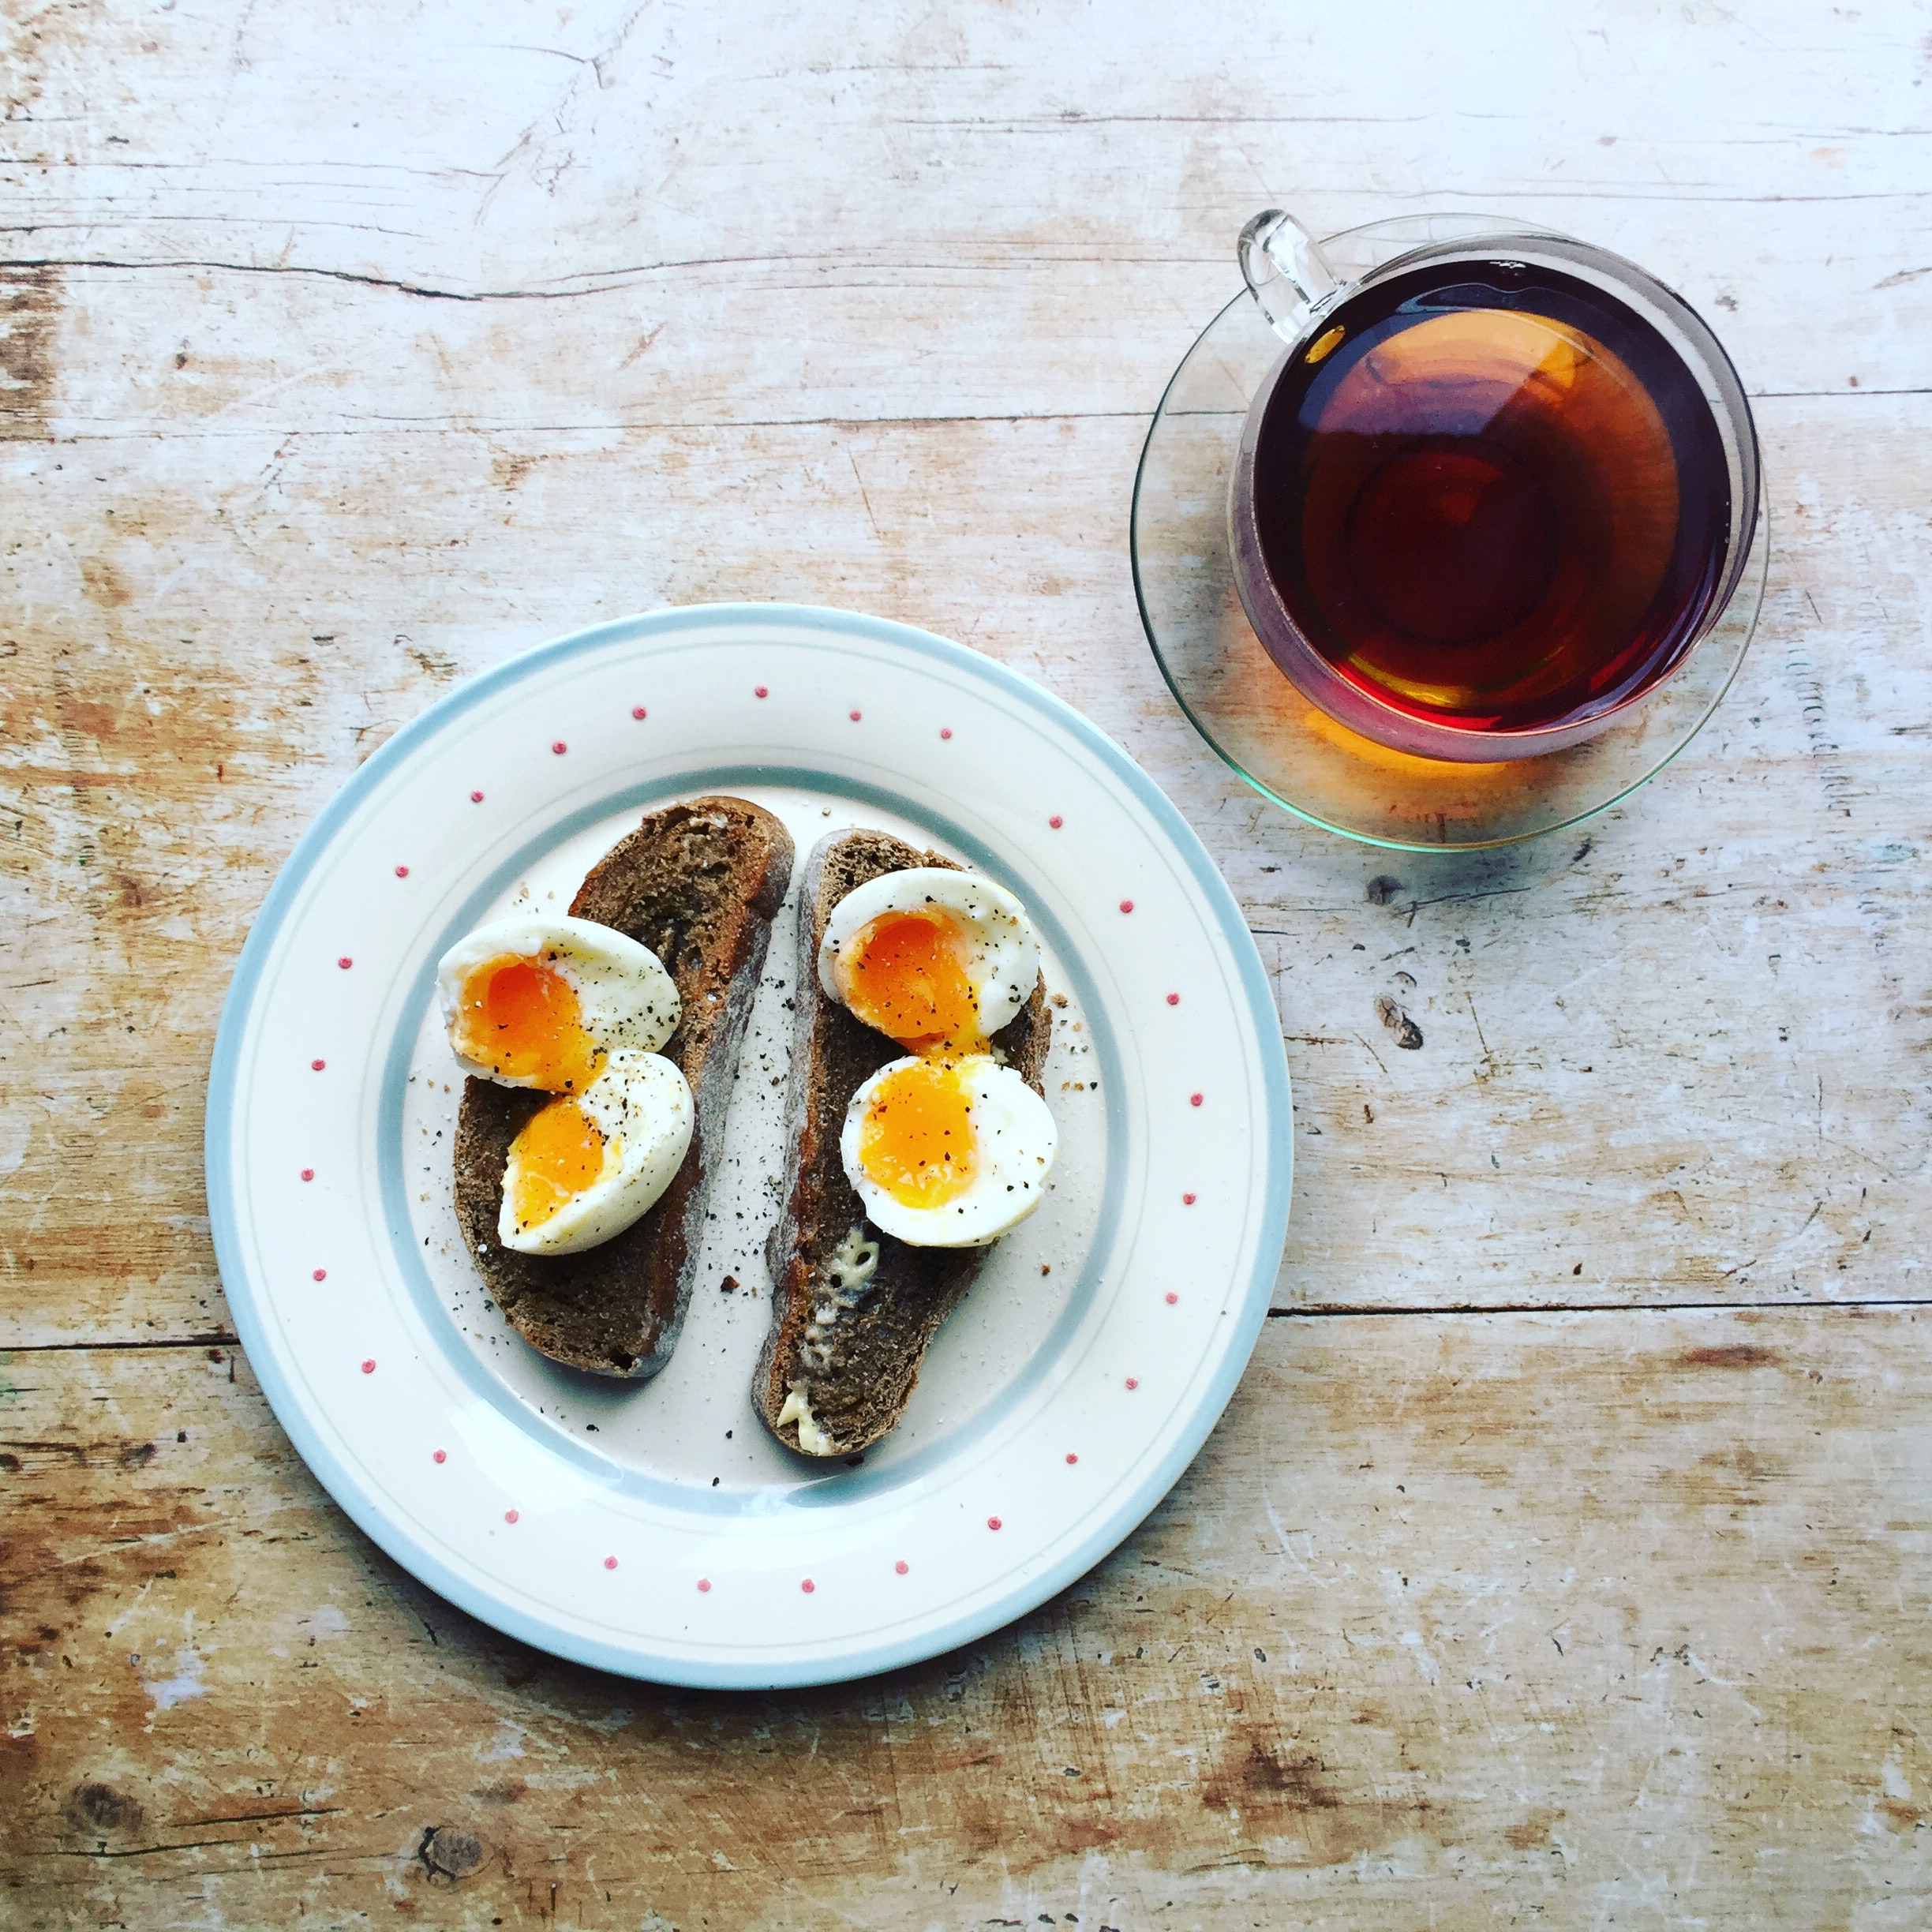 boiled eggs and toast on white ceramic plate near clear glass teacup filled with brown liquid